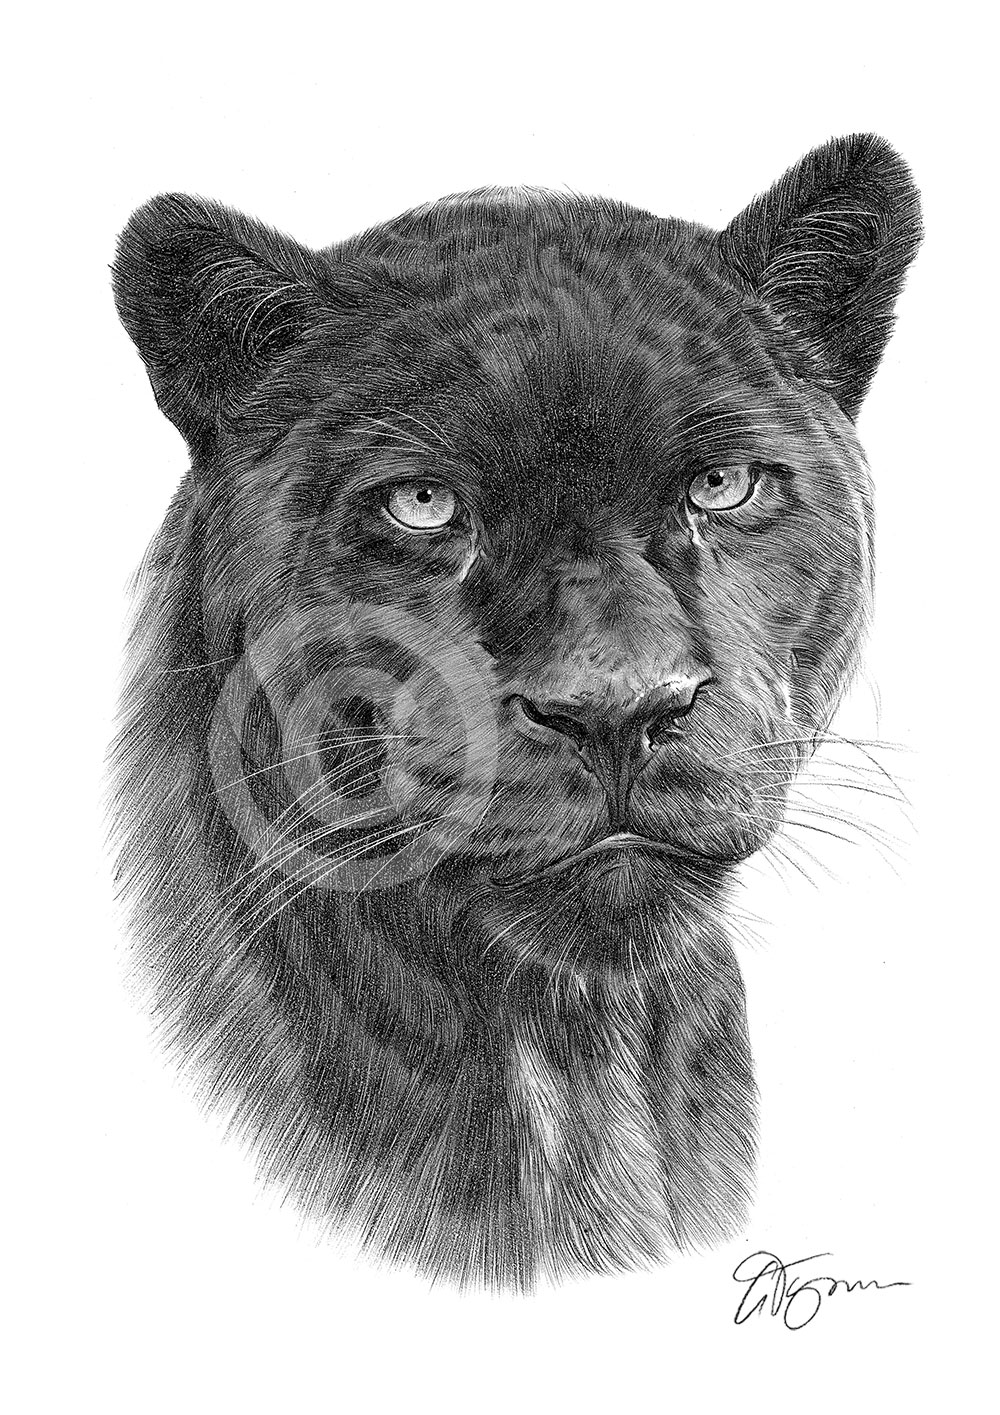 drawing of a black panther black panther pencil drawing art print a4a3 sizes african drawing black panther a of